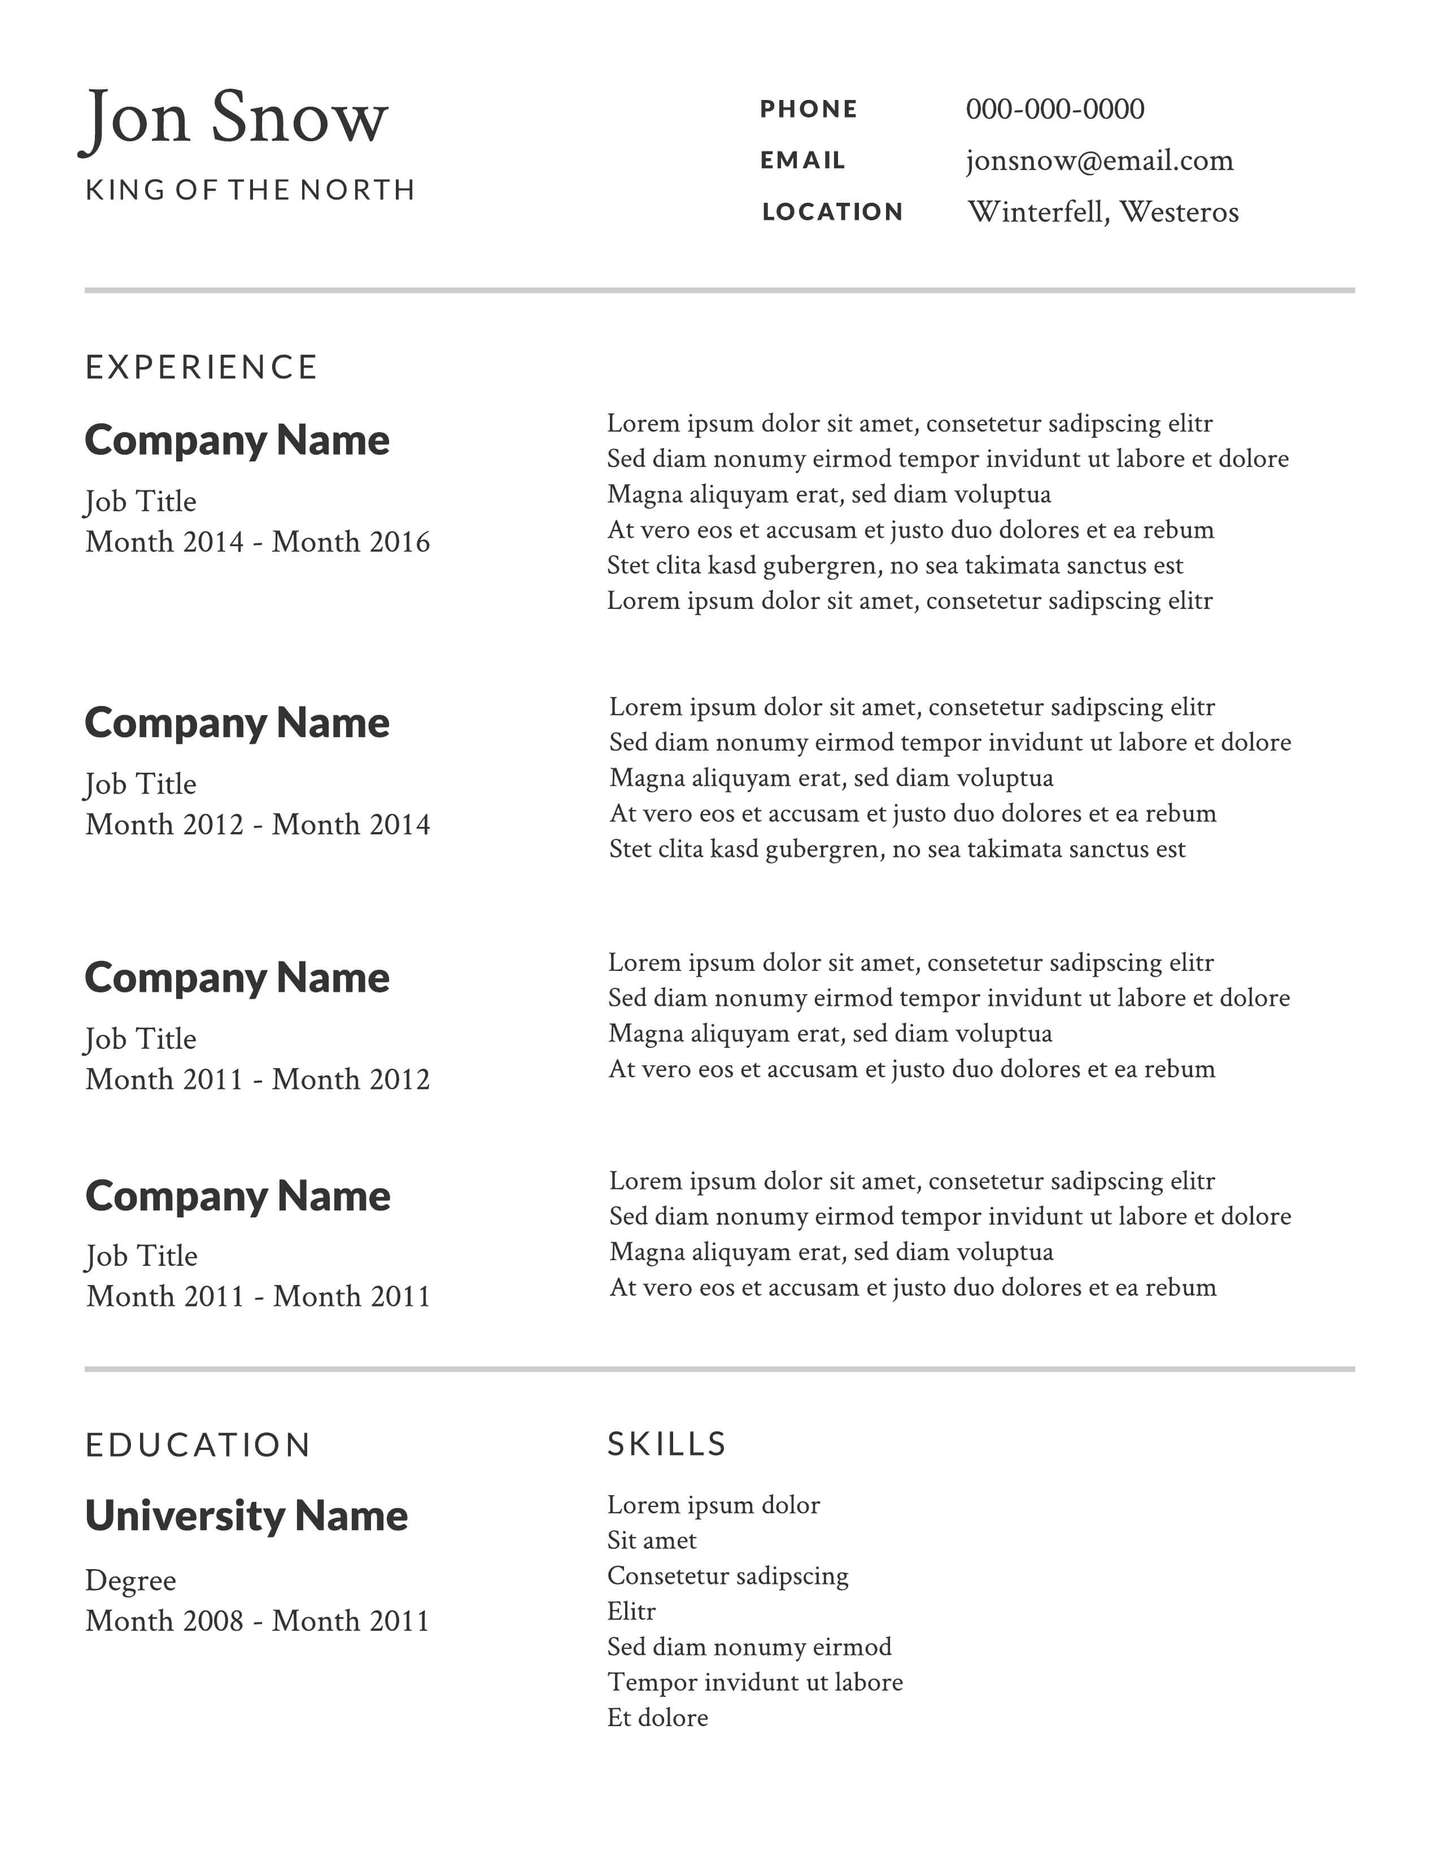 professional resume template lucidpress free 2x simple work from home objective olivia Resume Professional Resume Template Free